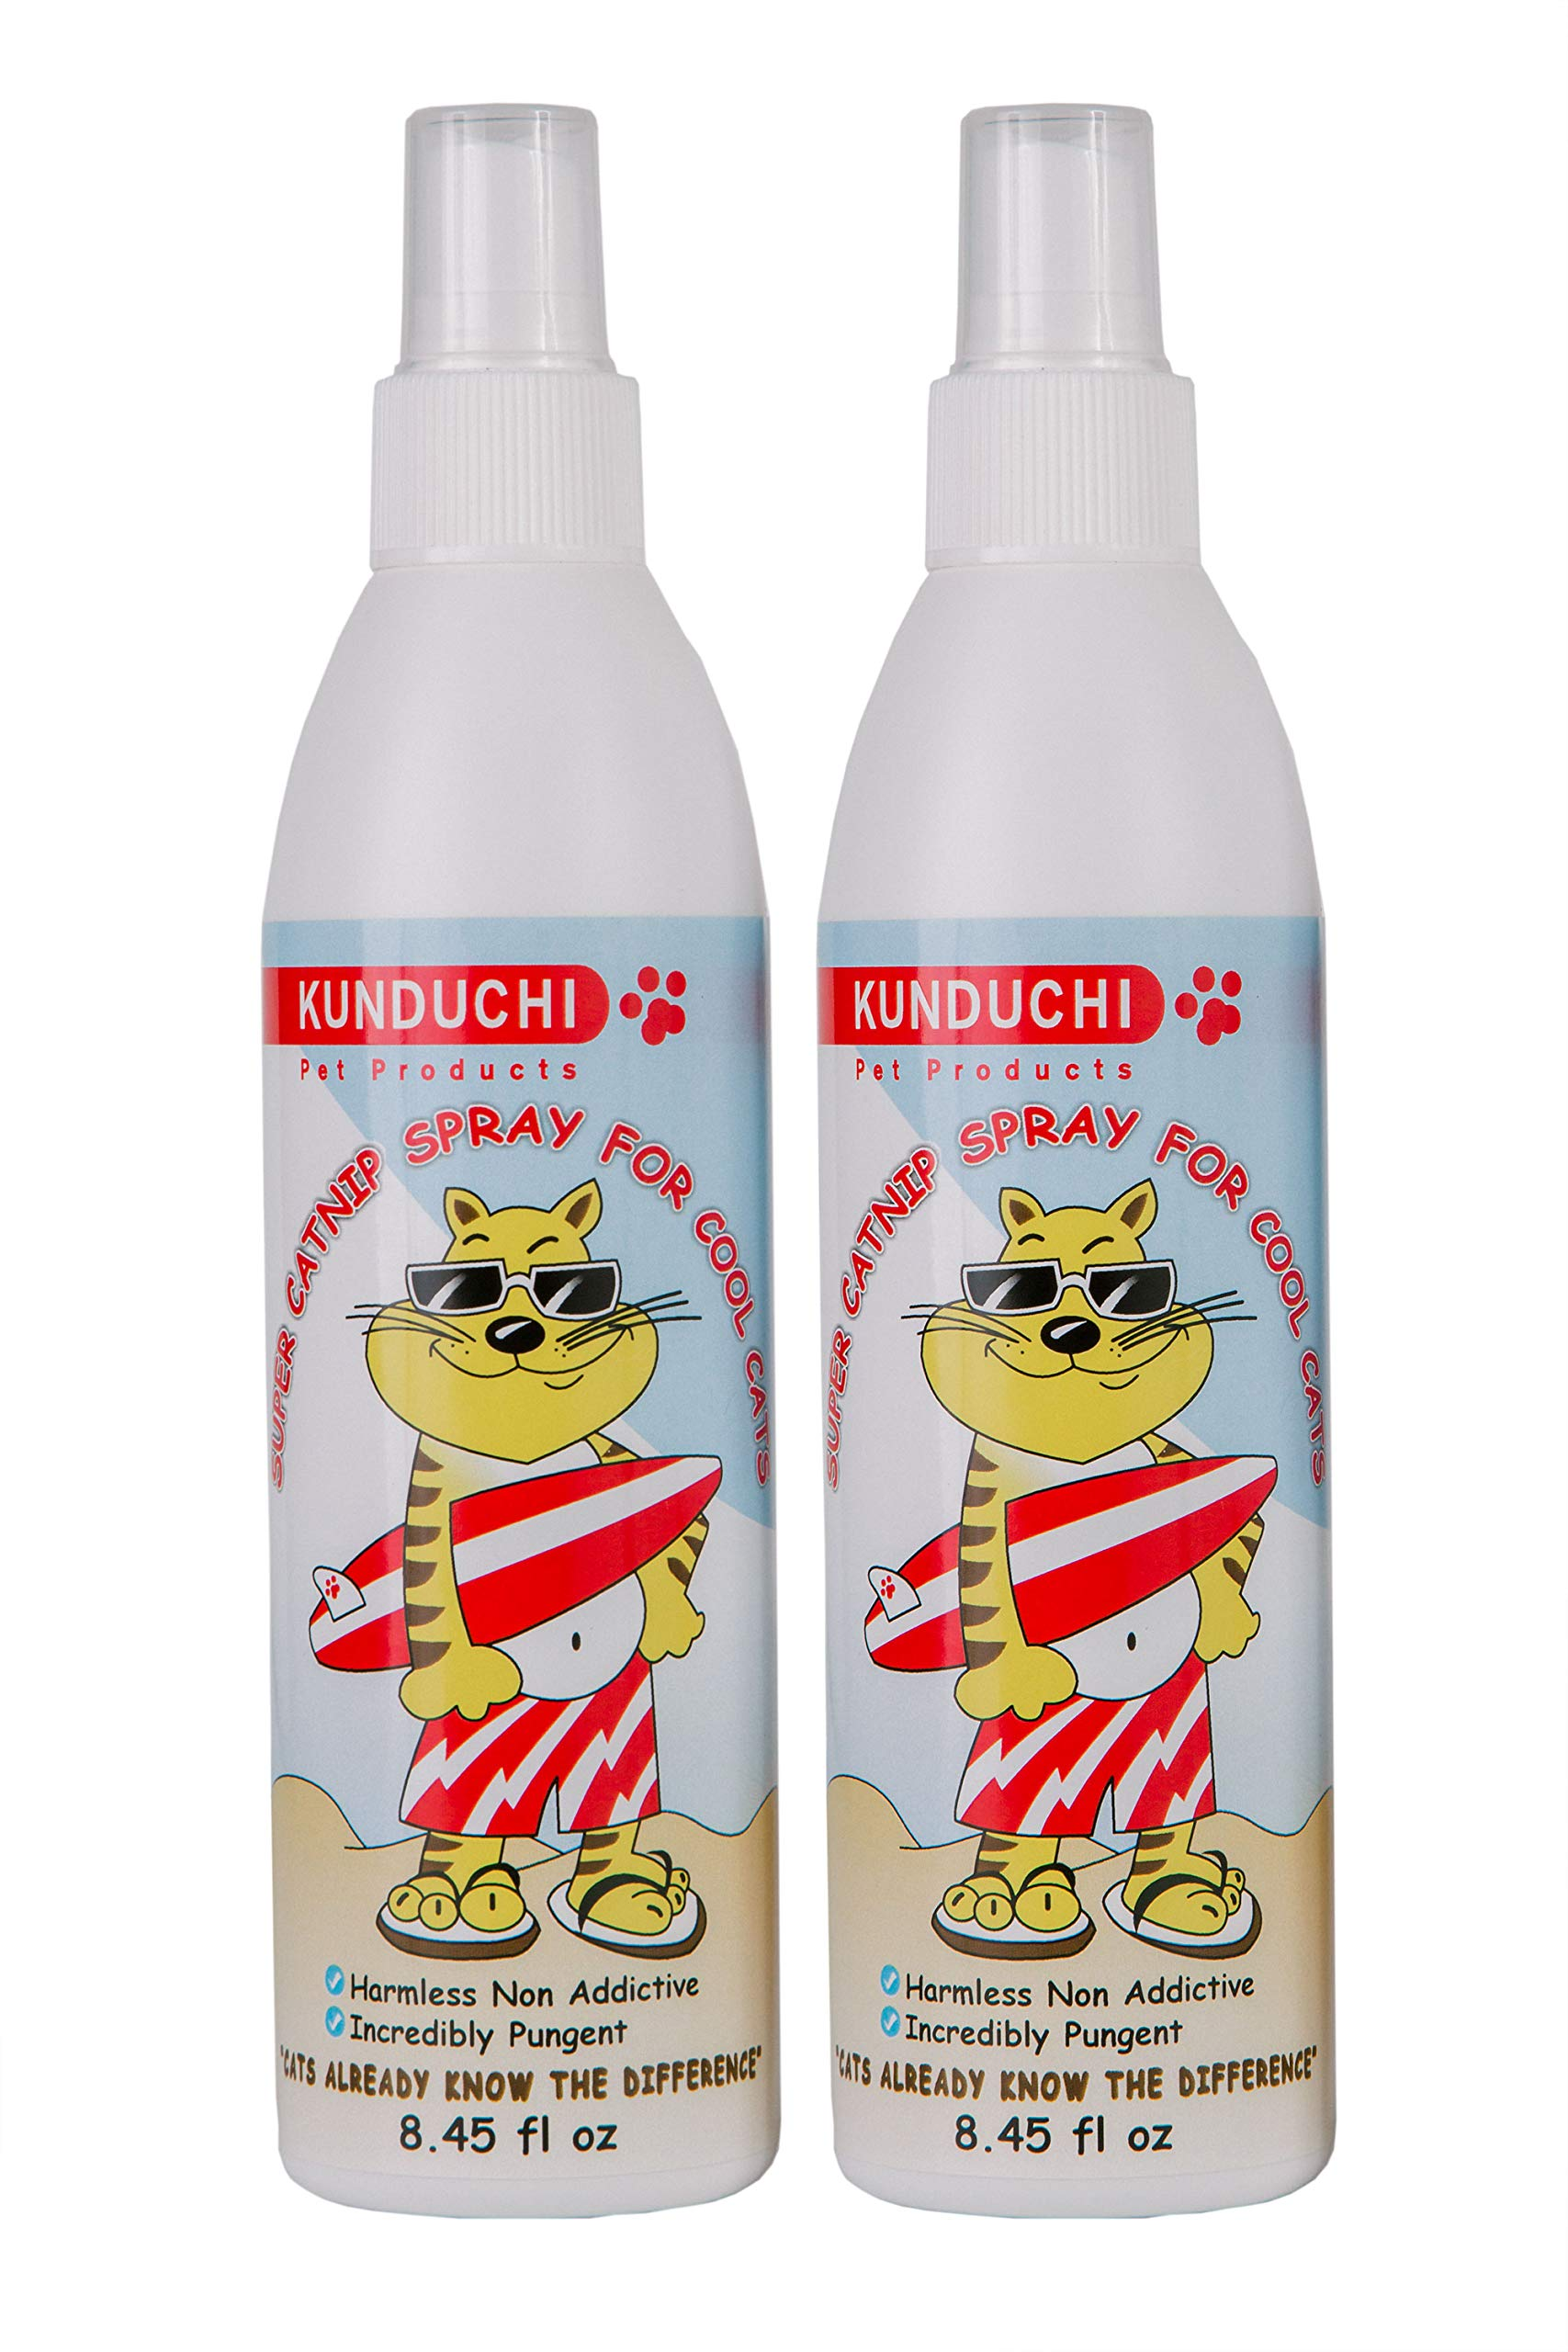 Kunduchi Pet Products Catnip Spray for Cats and Kitty Toys, Scratching Posts, and Potent 2 x 8.5 Ounces by Kunduchi Pet Products